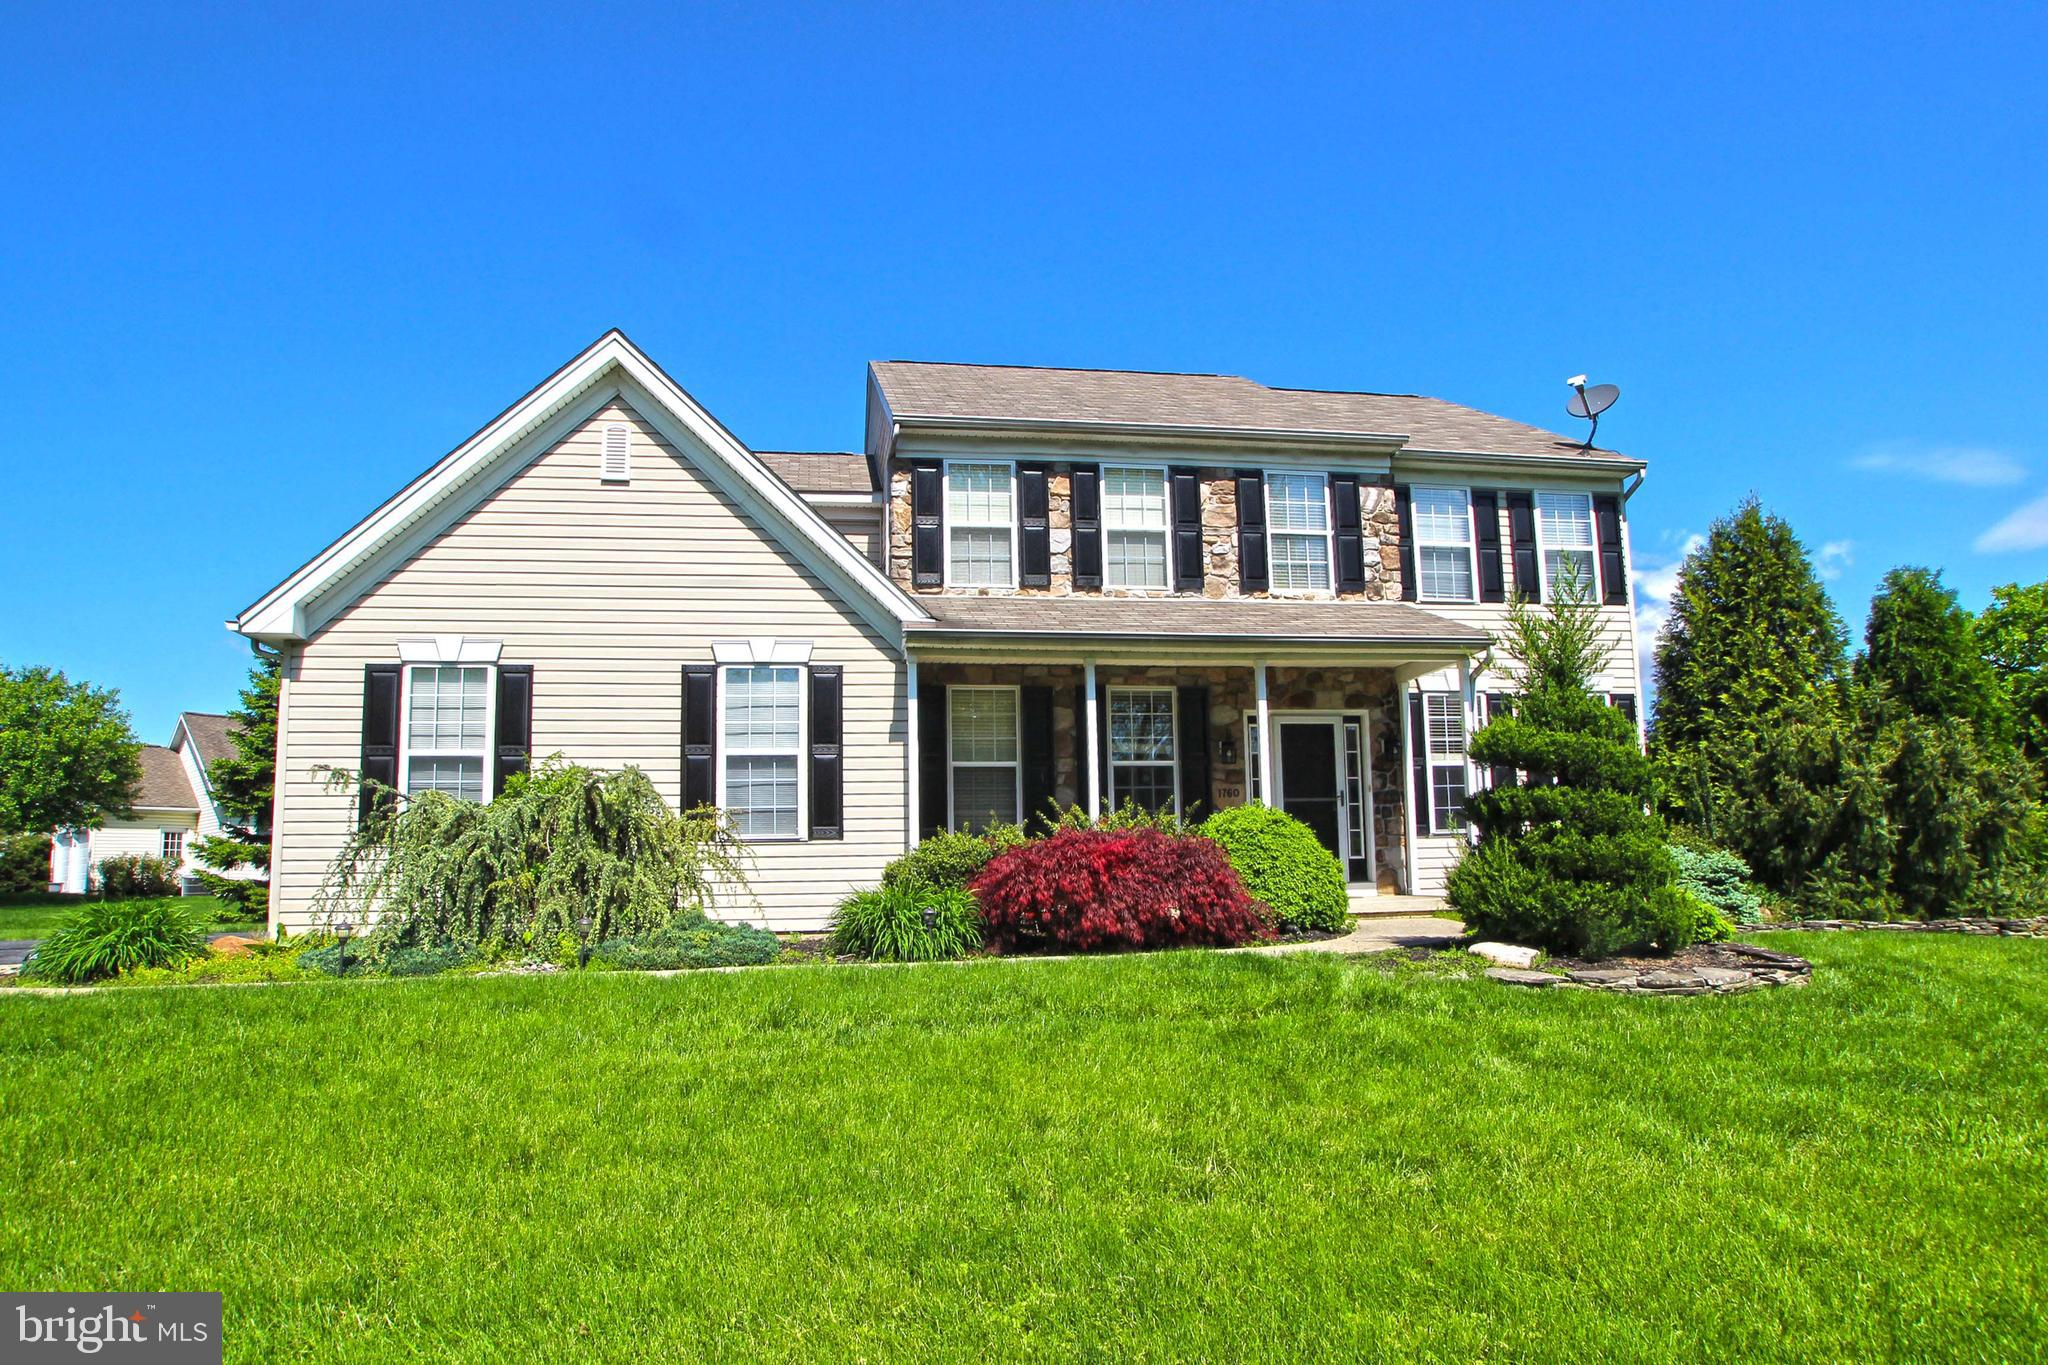 1760 BLOSSOM HILL ROAD, EASTON, PA 18040